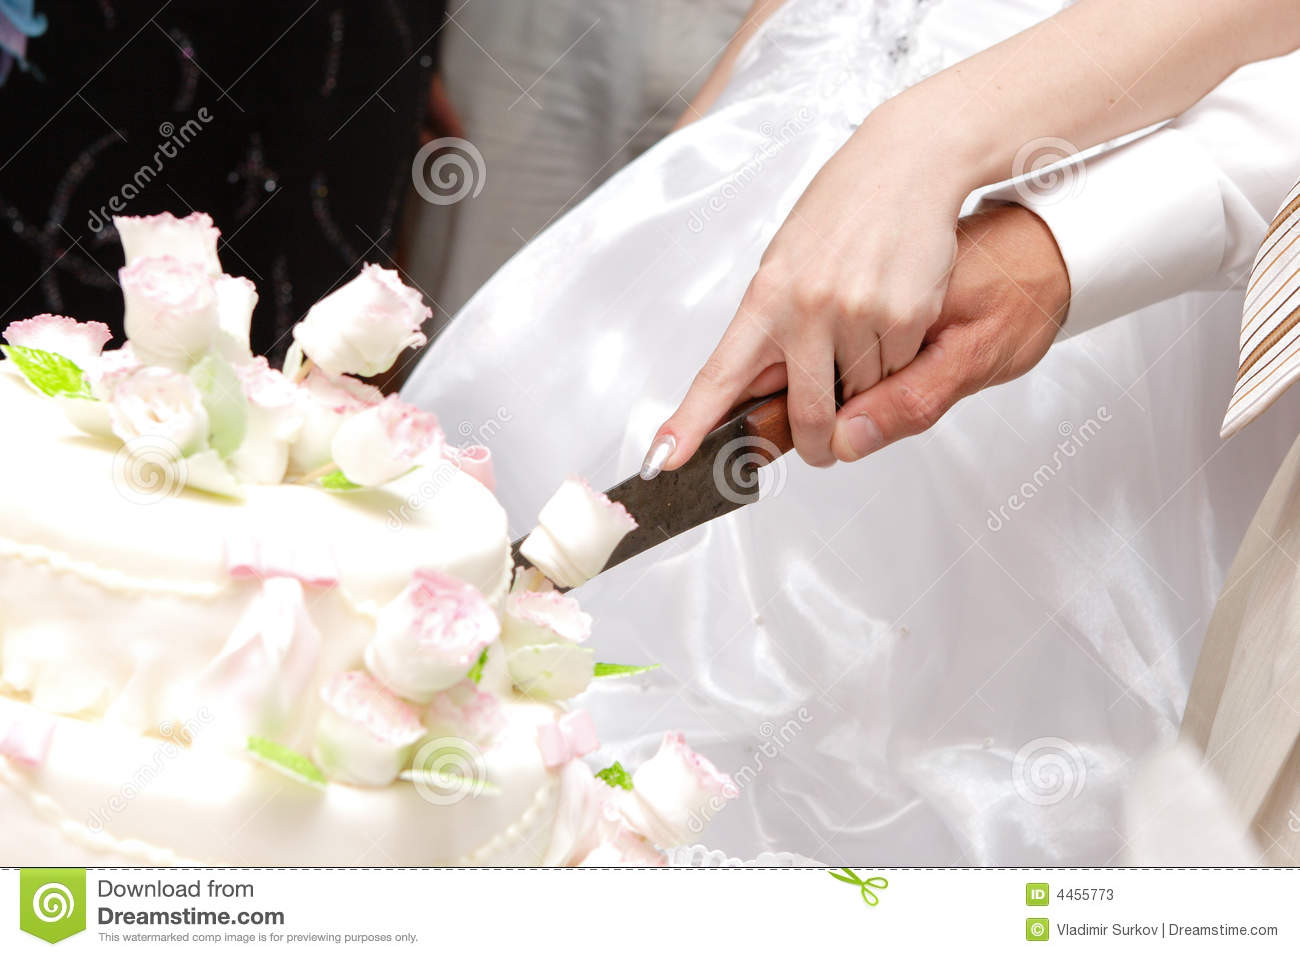 how to cut a wedding cake bride and groom cutting a wedding cake stock image image of nuptials 15626